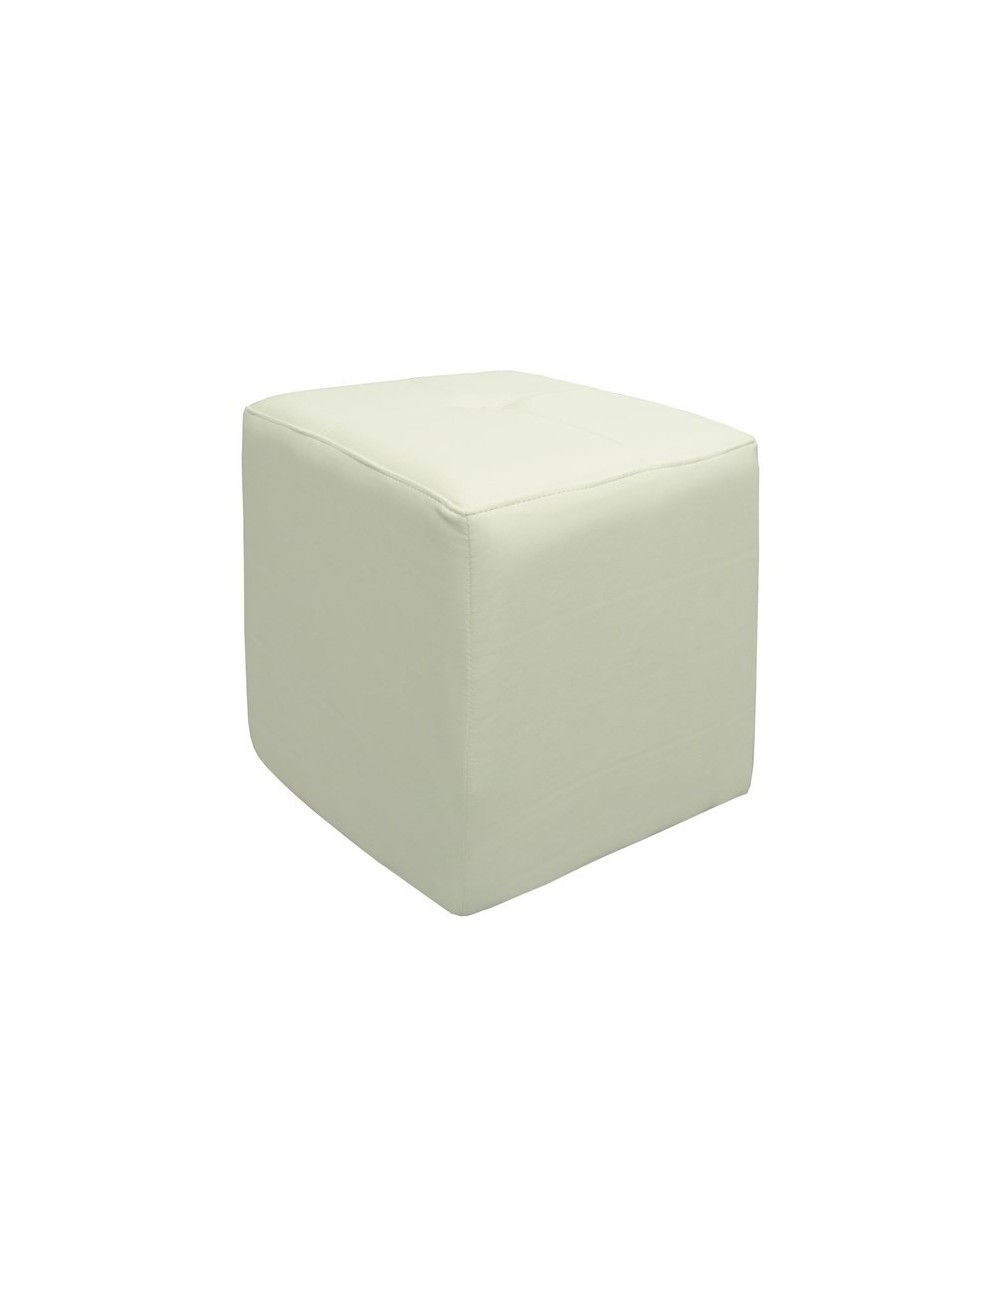 Pouf in ecopelle Bianco made in Italy in promozione- Wonderlandstore.eu